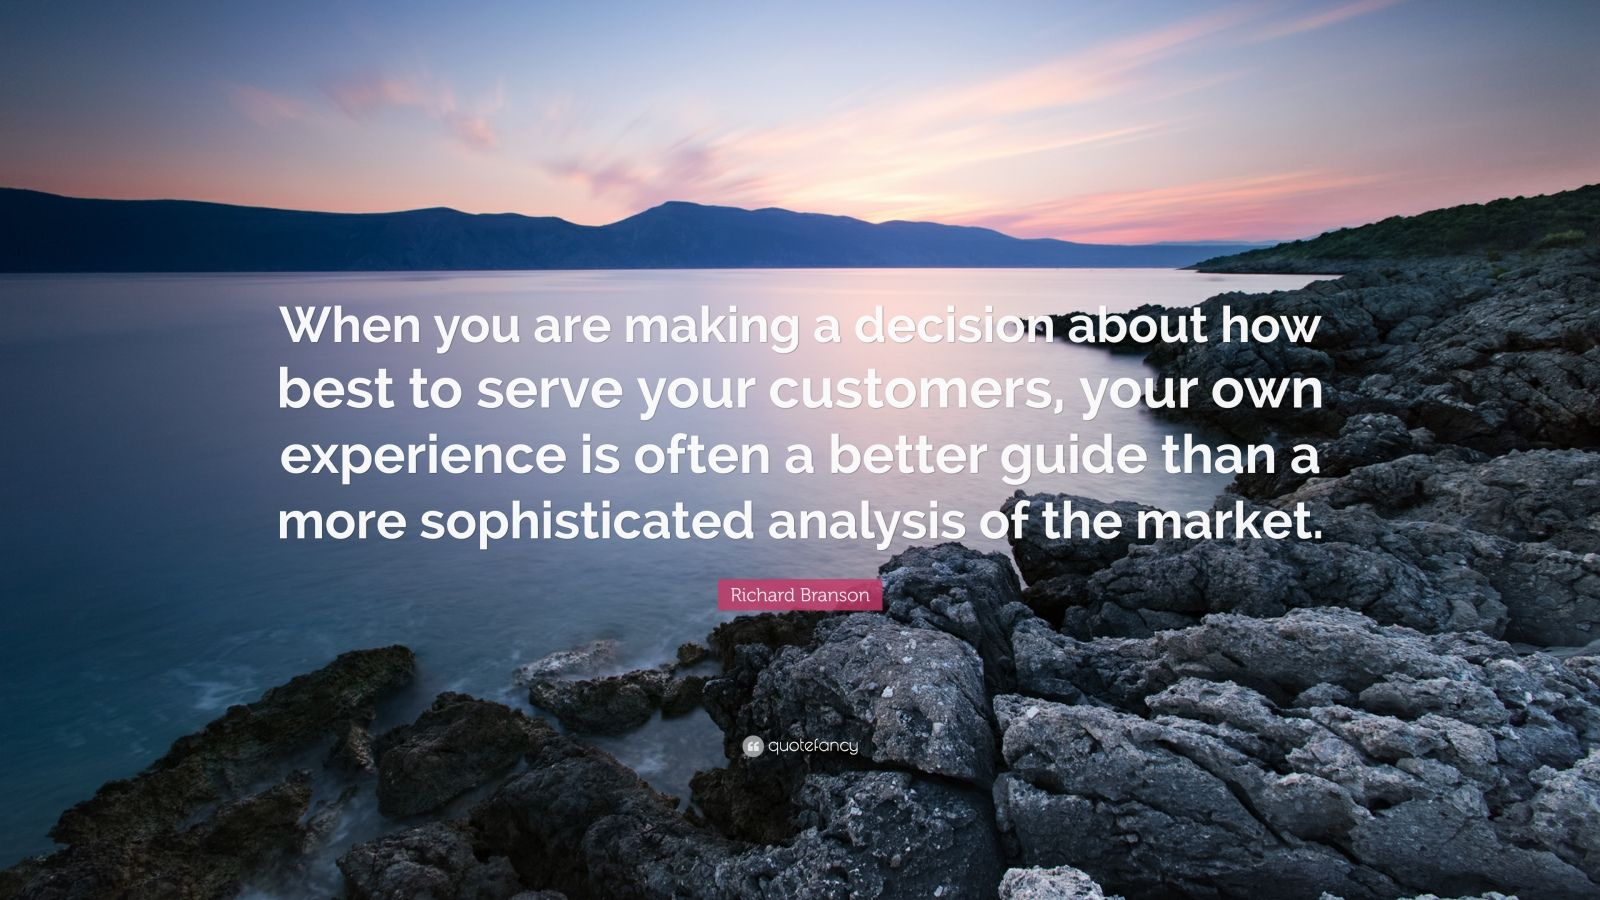 """Richard Branson Quote: """"When you are making a decision about how best to serve your customers, your own experience is often a better guide than a more sophisticated analysis of the market."""""""